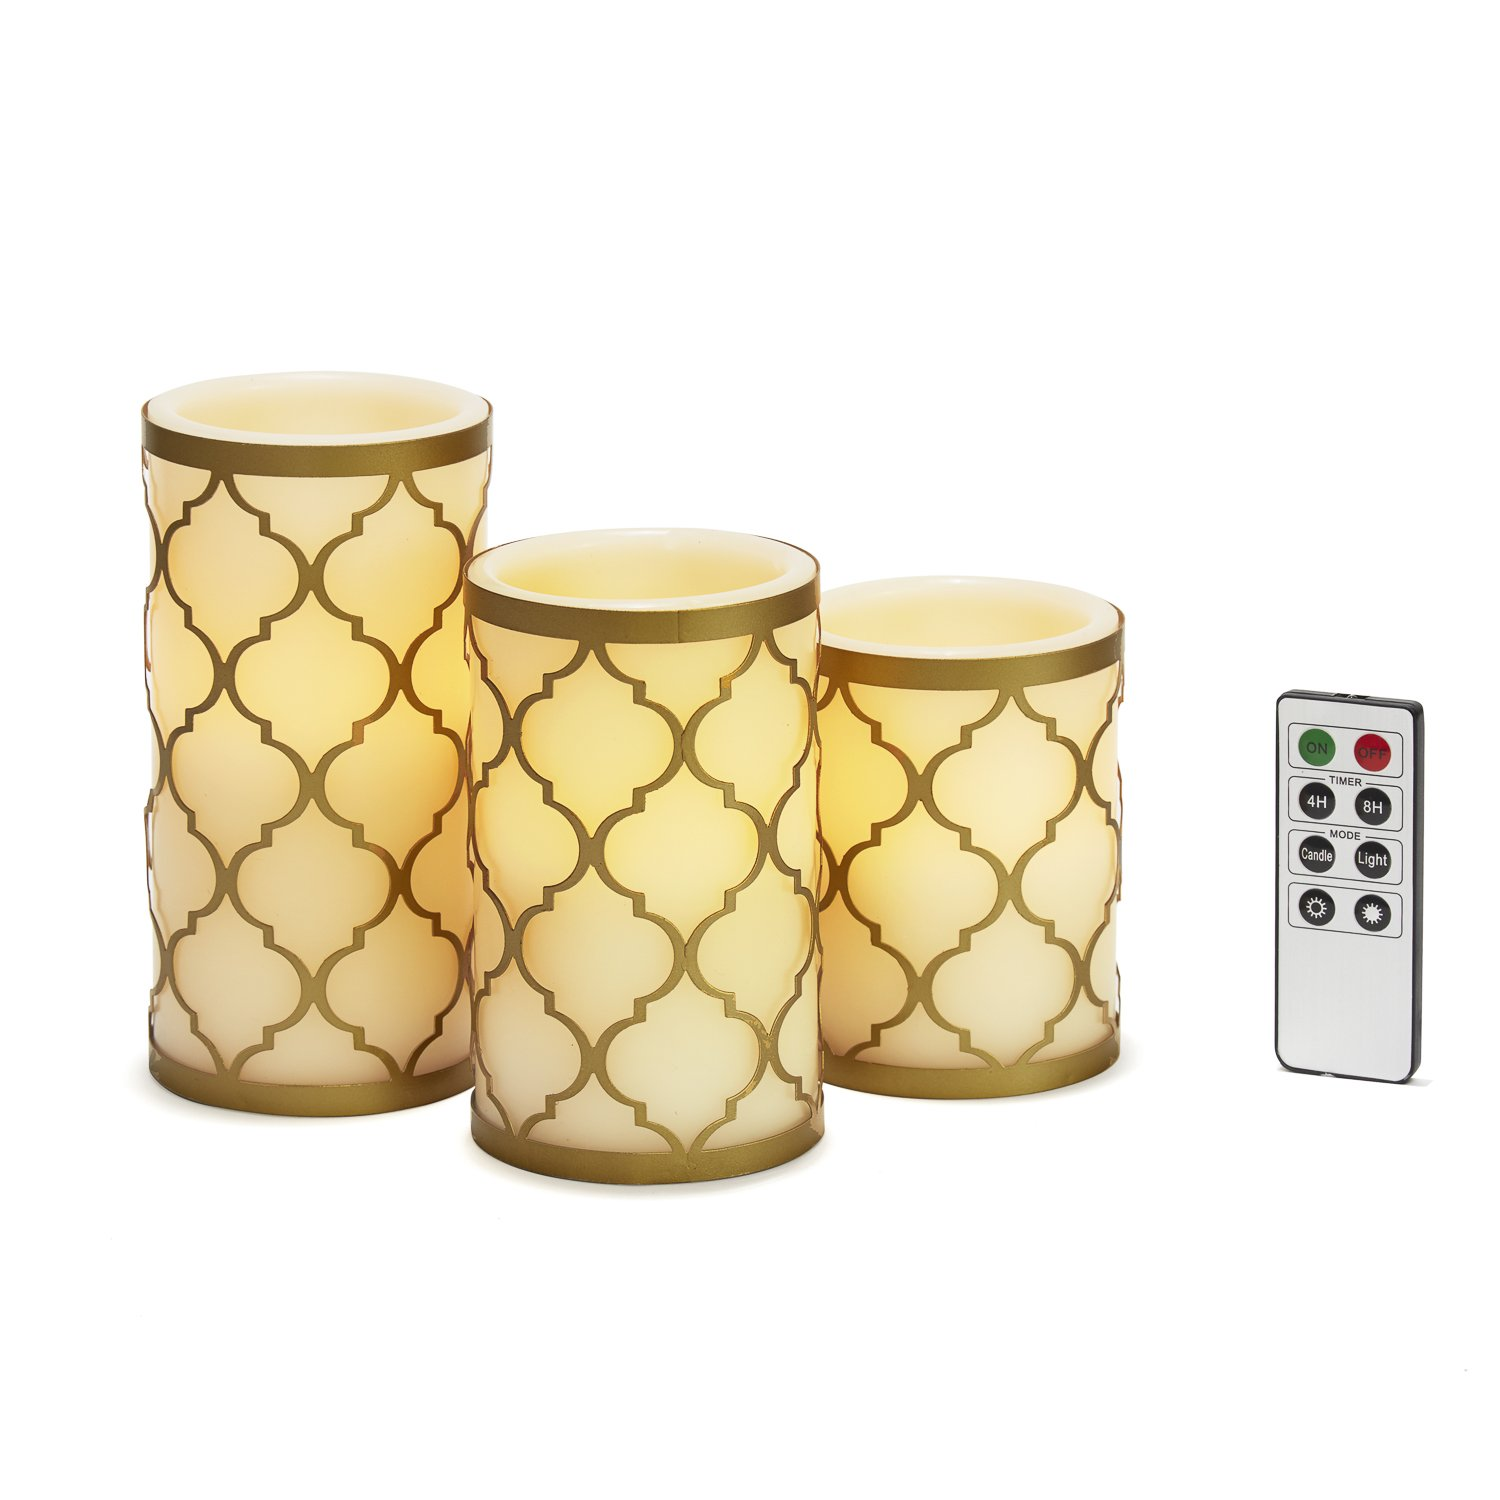 Flameless Ivory Pillar Candles- Brass Removable Candle Holders, Warm White LED Glow, Remote and Batteries Included, Moroccan Style Decorative Candle Set of 3